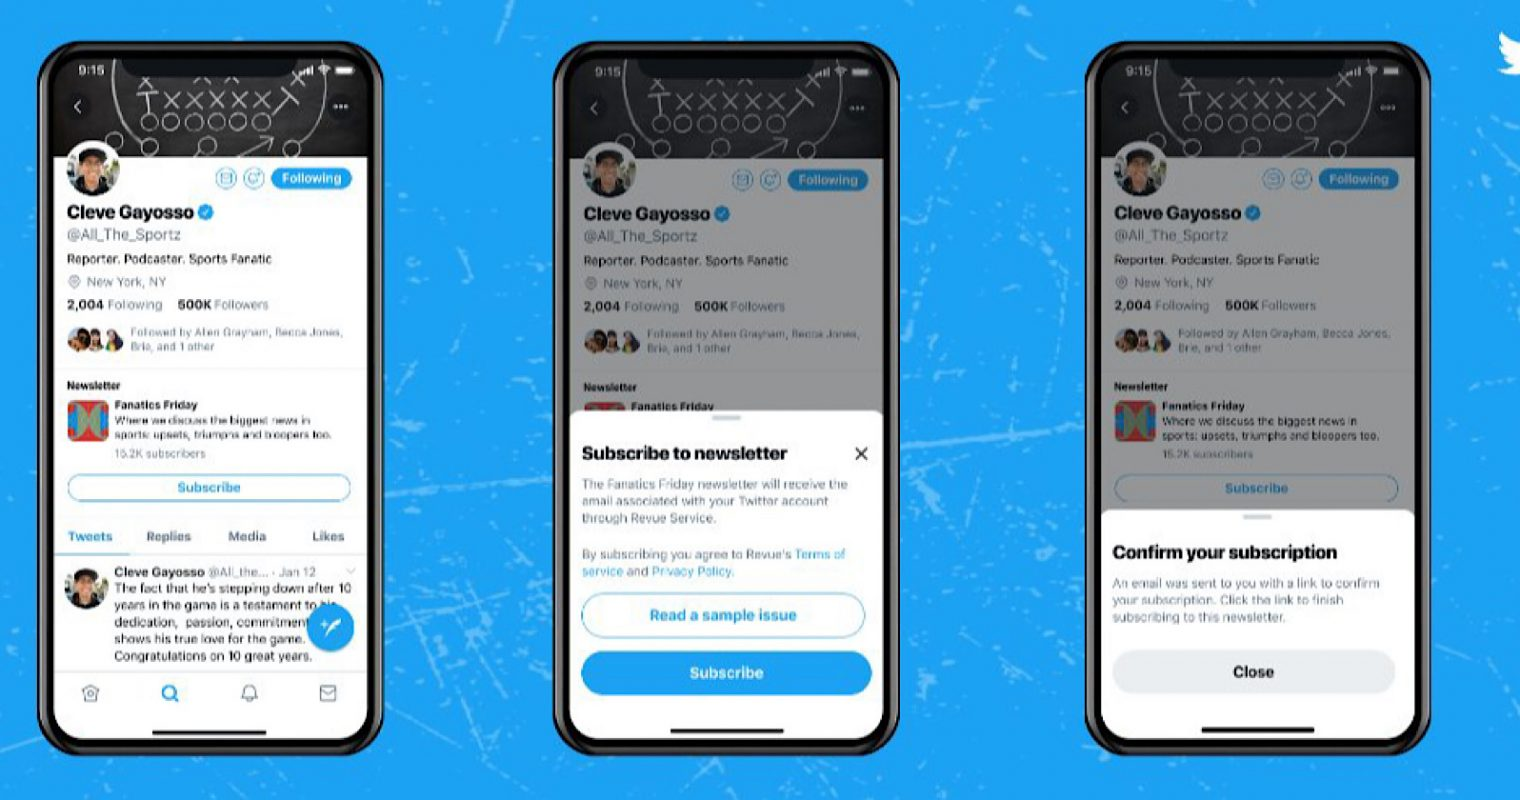 Twitter Adding 'Subscribe' Button to Profiles For Newsletter Signups